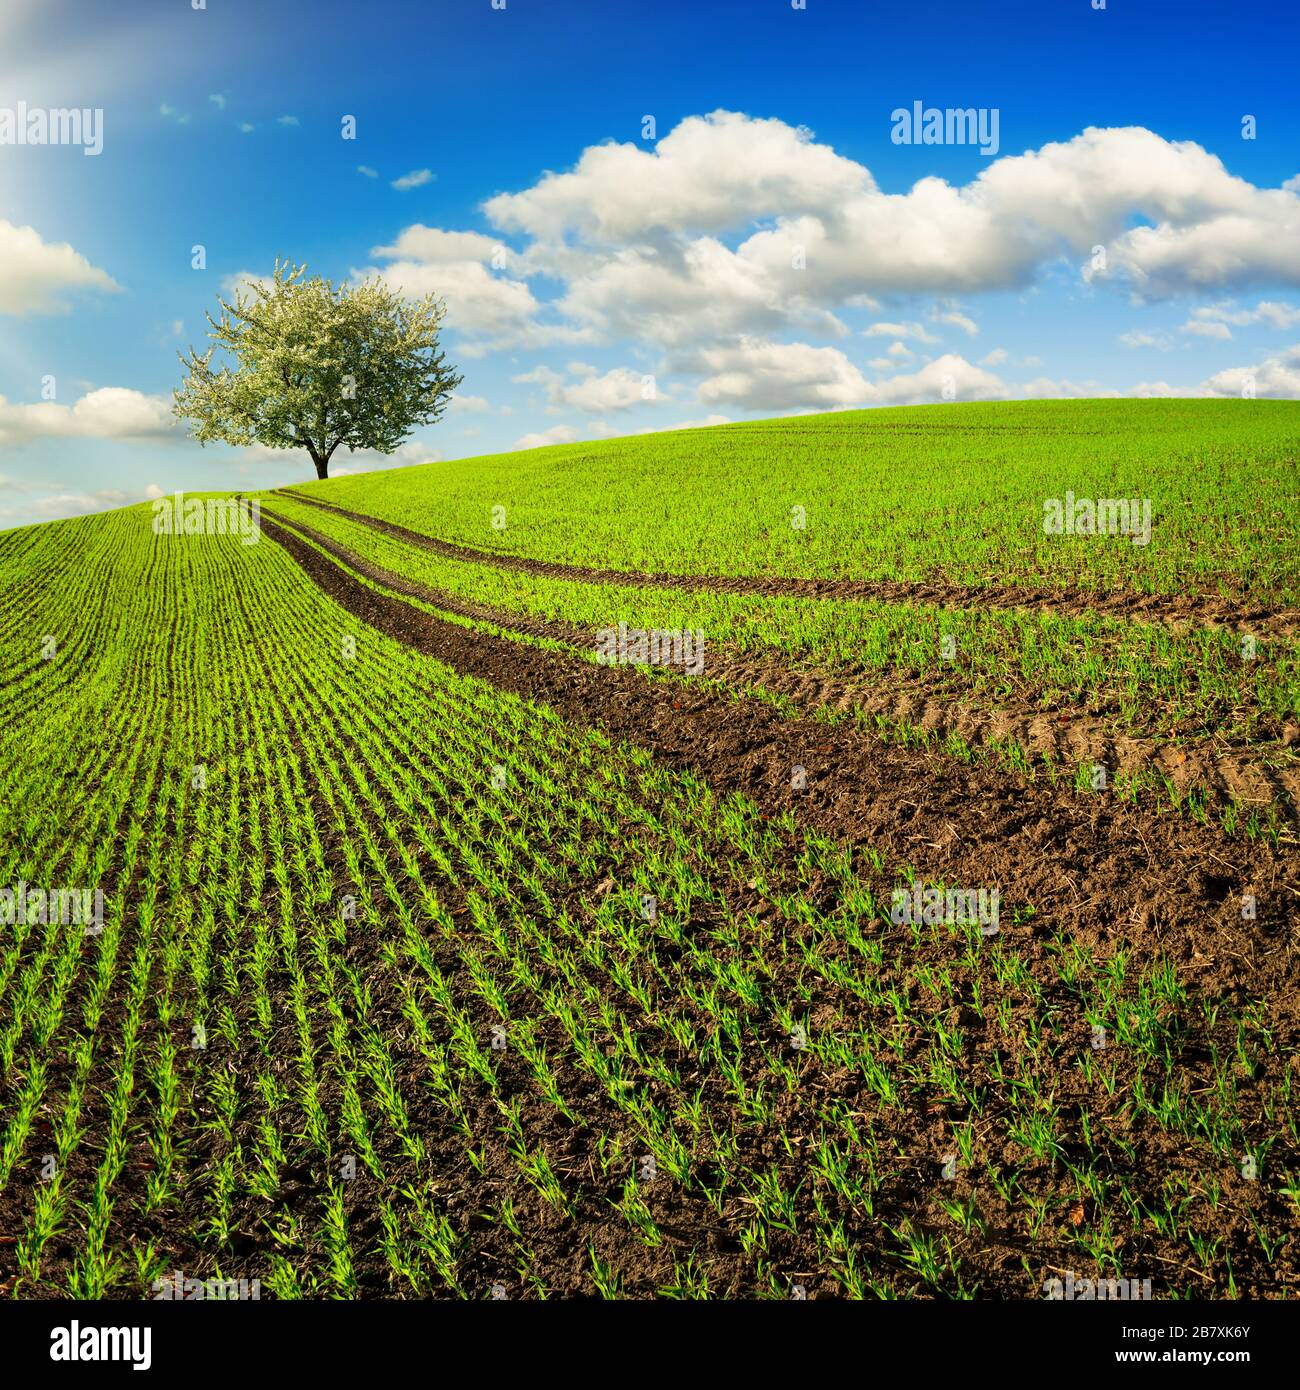 Trails on a field with young plants leading to a lone tree on the horizon. Landscape in square format with a green hill and blue sky Stock Photo